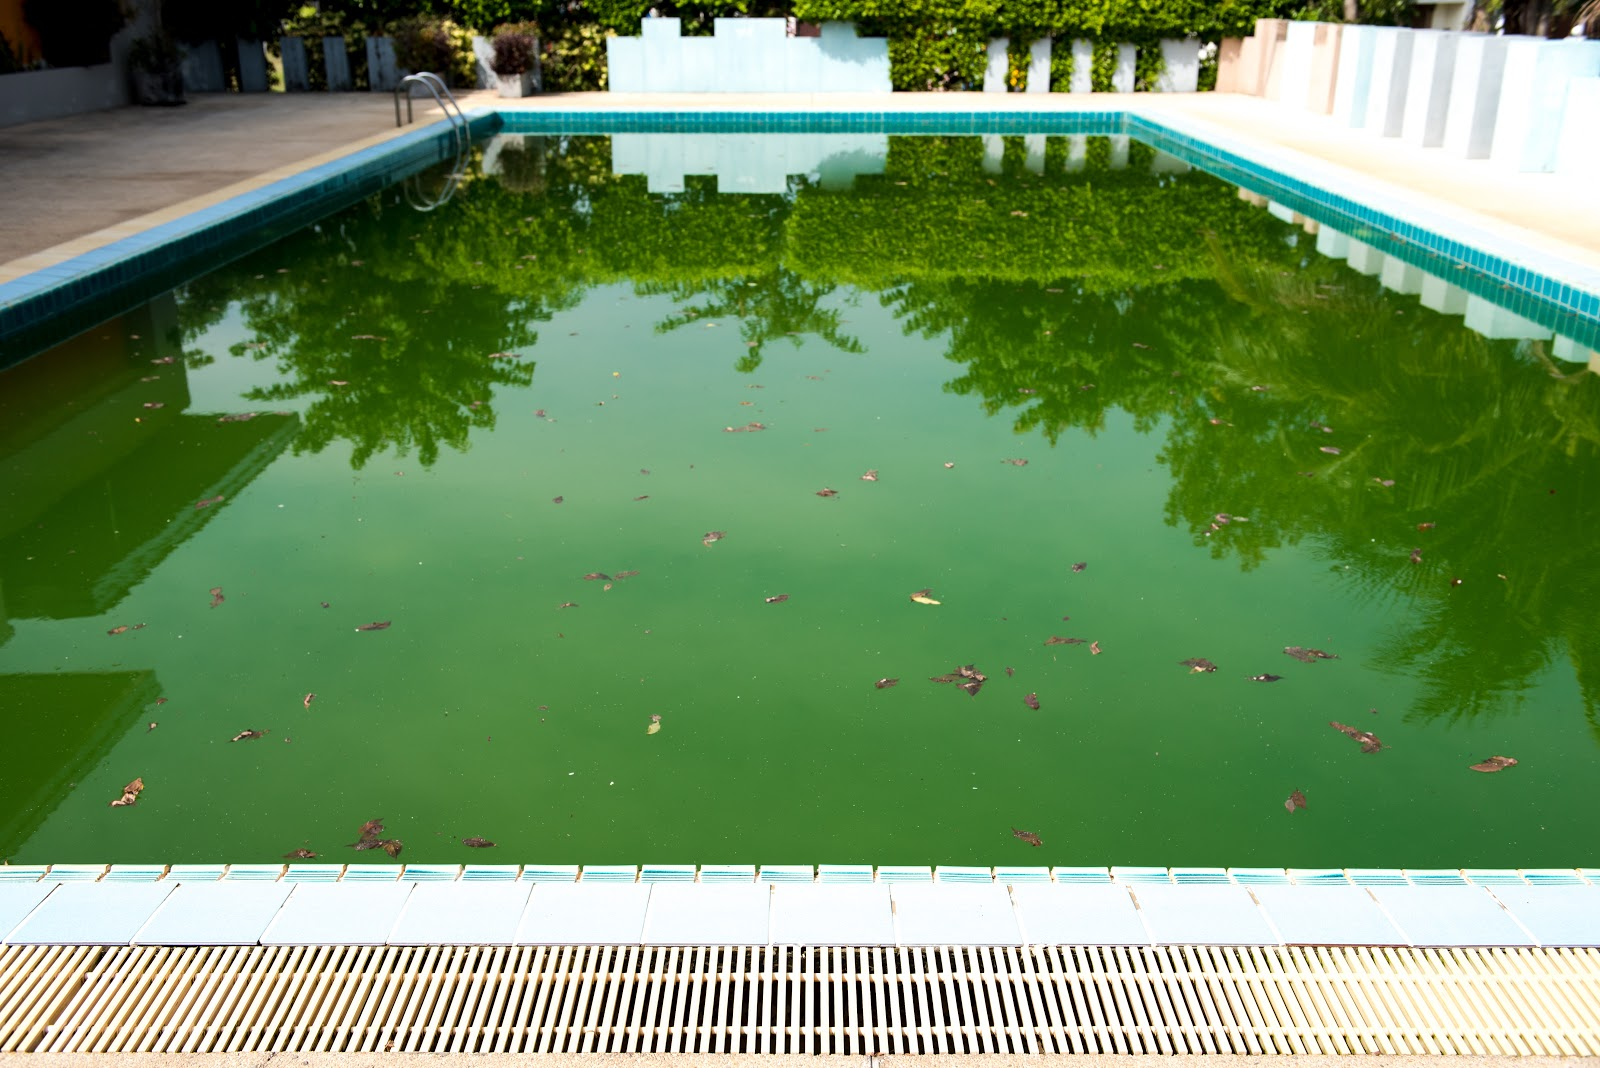 an inground swimming pool with green water and brown leaves in it